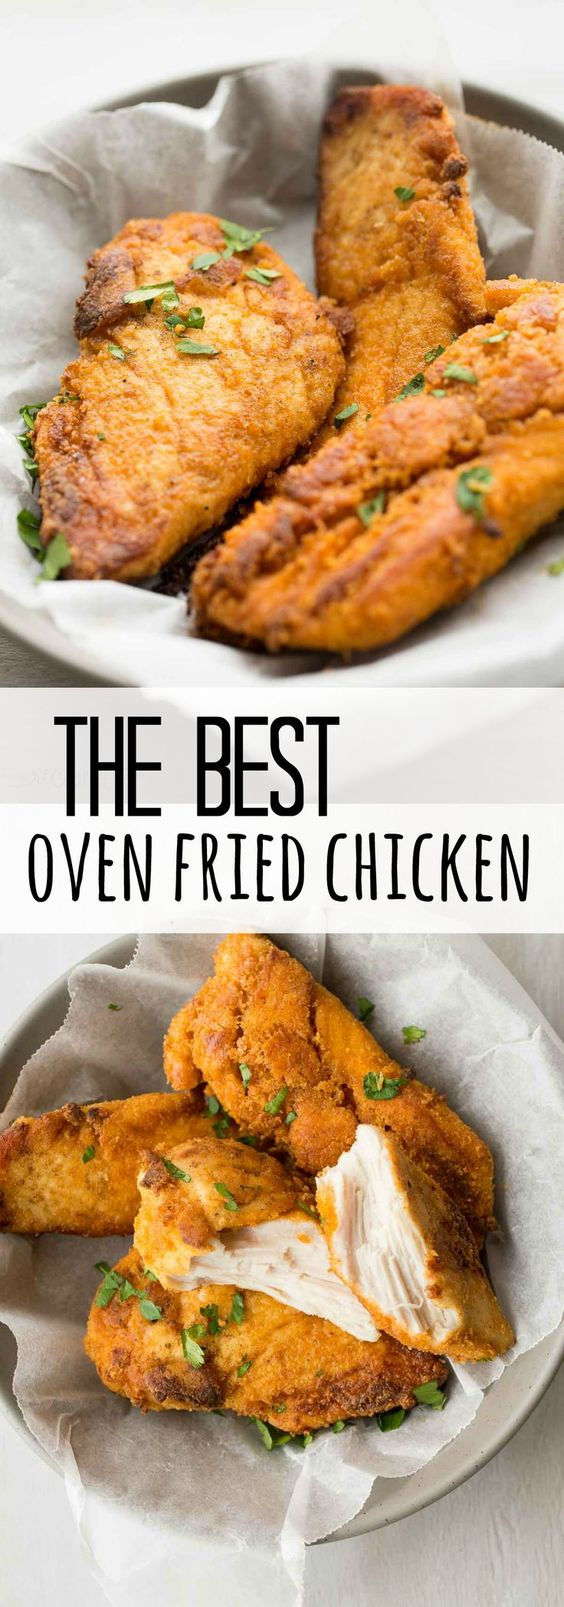 The Best Oven-Fried Chicken | Recipe | KFC, Recipe and ...